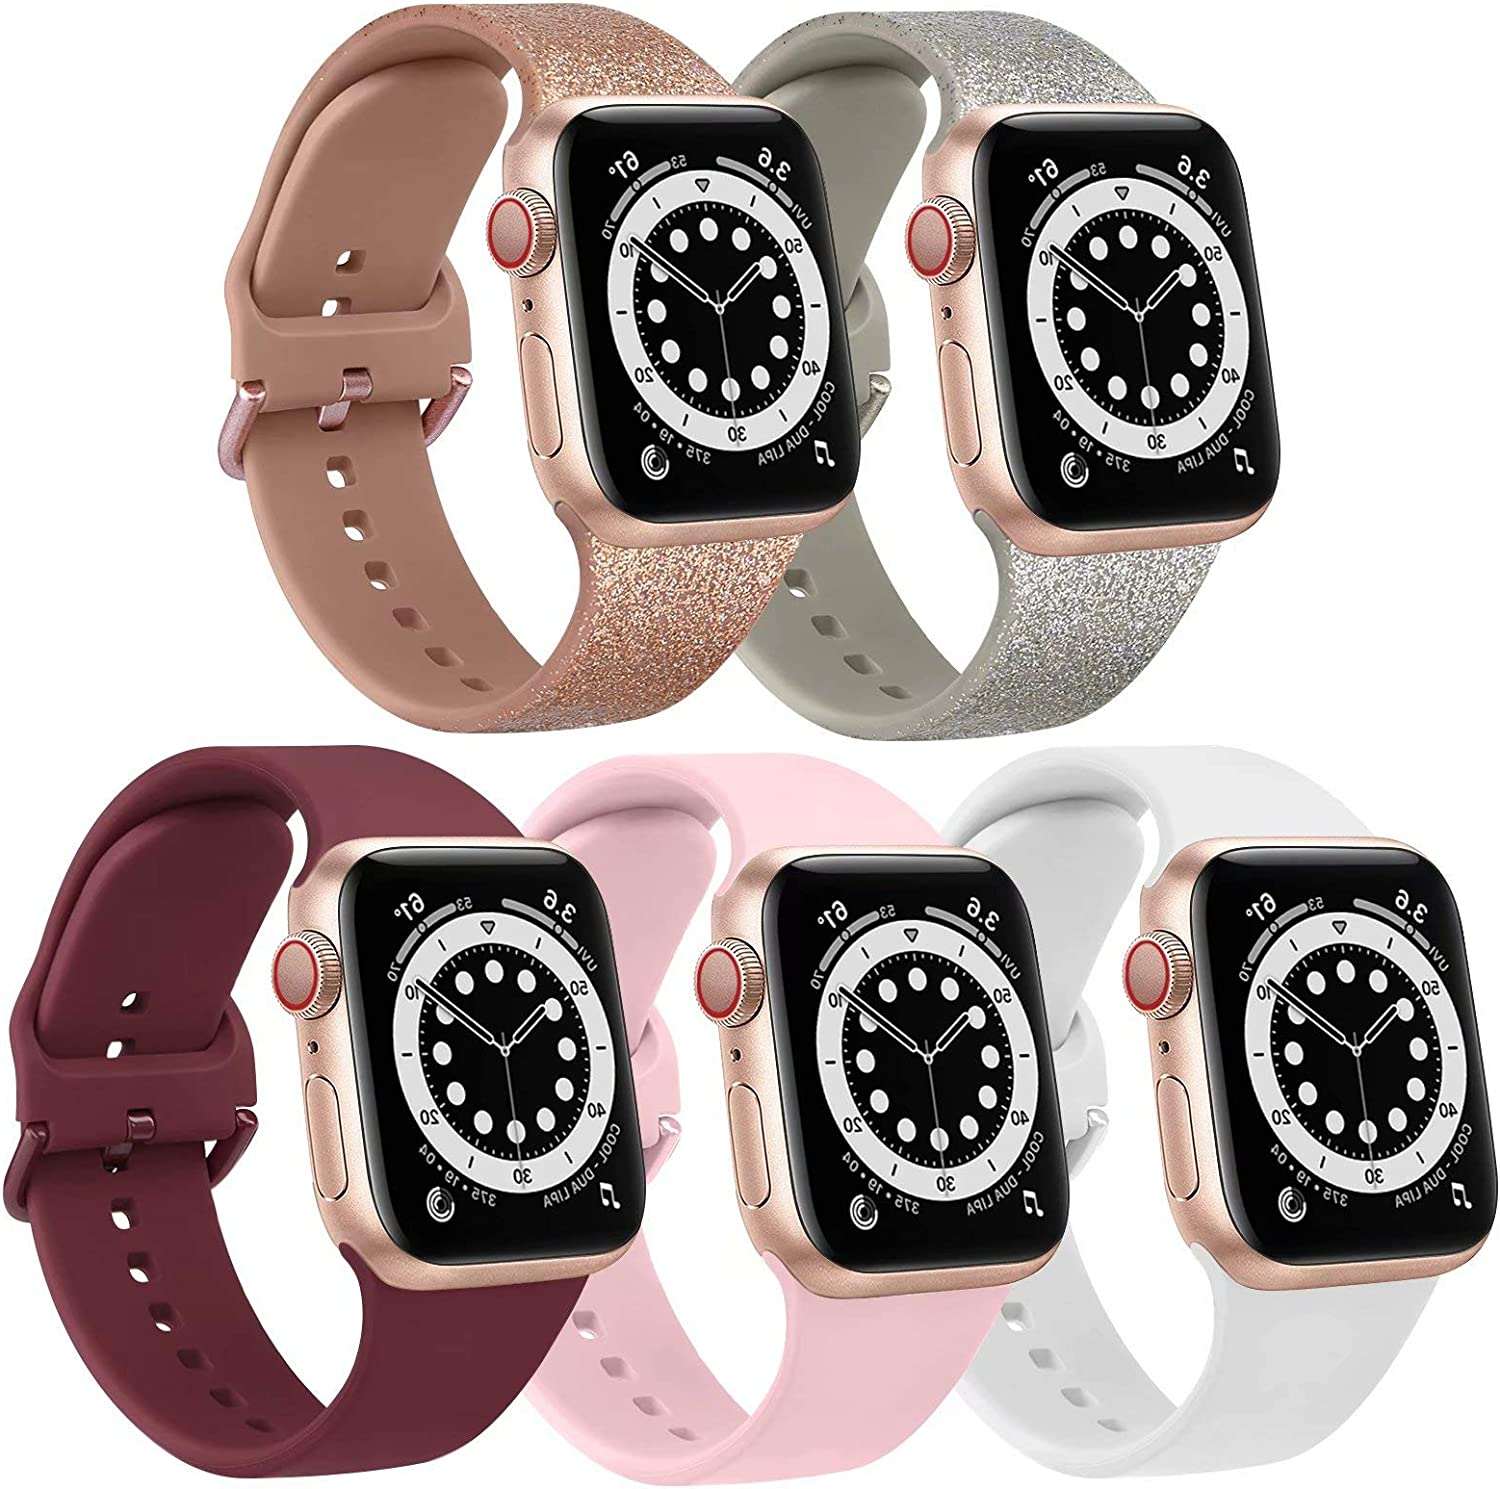 [5 Pack] Bands Compatible with Apple Watch Band 40mm 38mm Soft Silicone Sport Replacement Strap (38/40mm, Glitter Rose Gold/Glitter Silver/Pink/Wine Red/White)